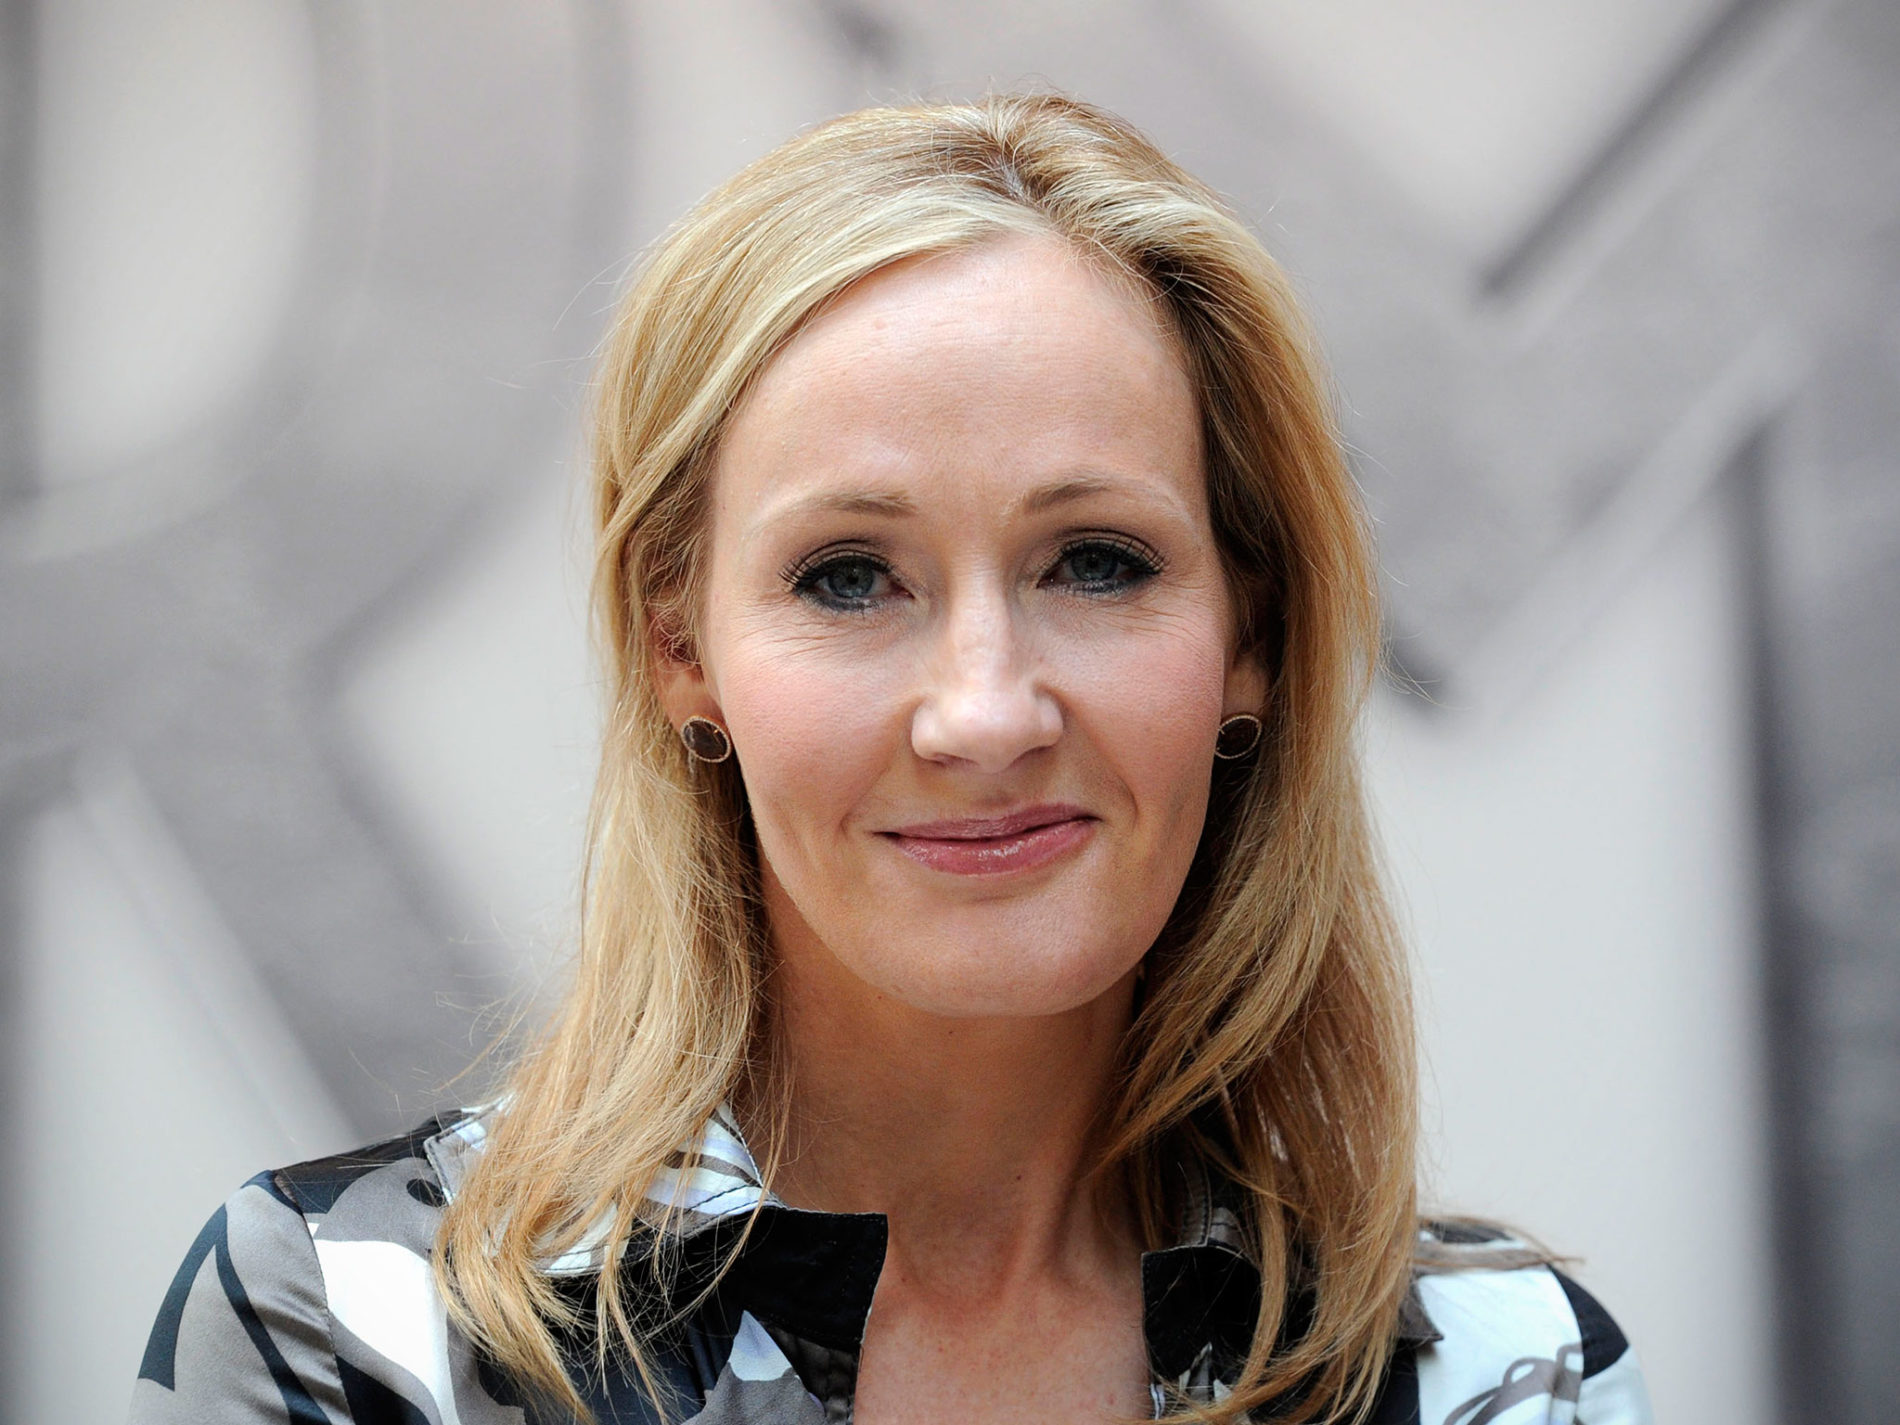 JK Rowling yet again proves she is the Queen ofTwitter